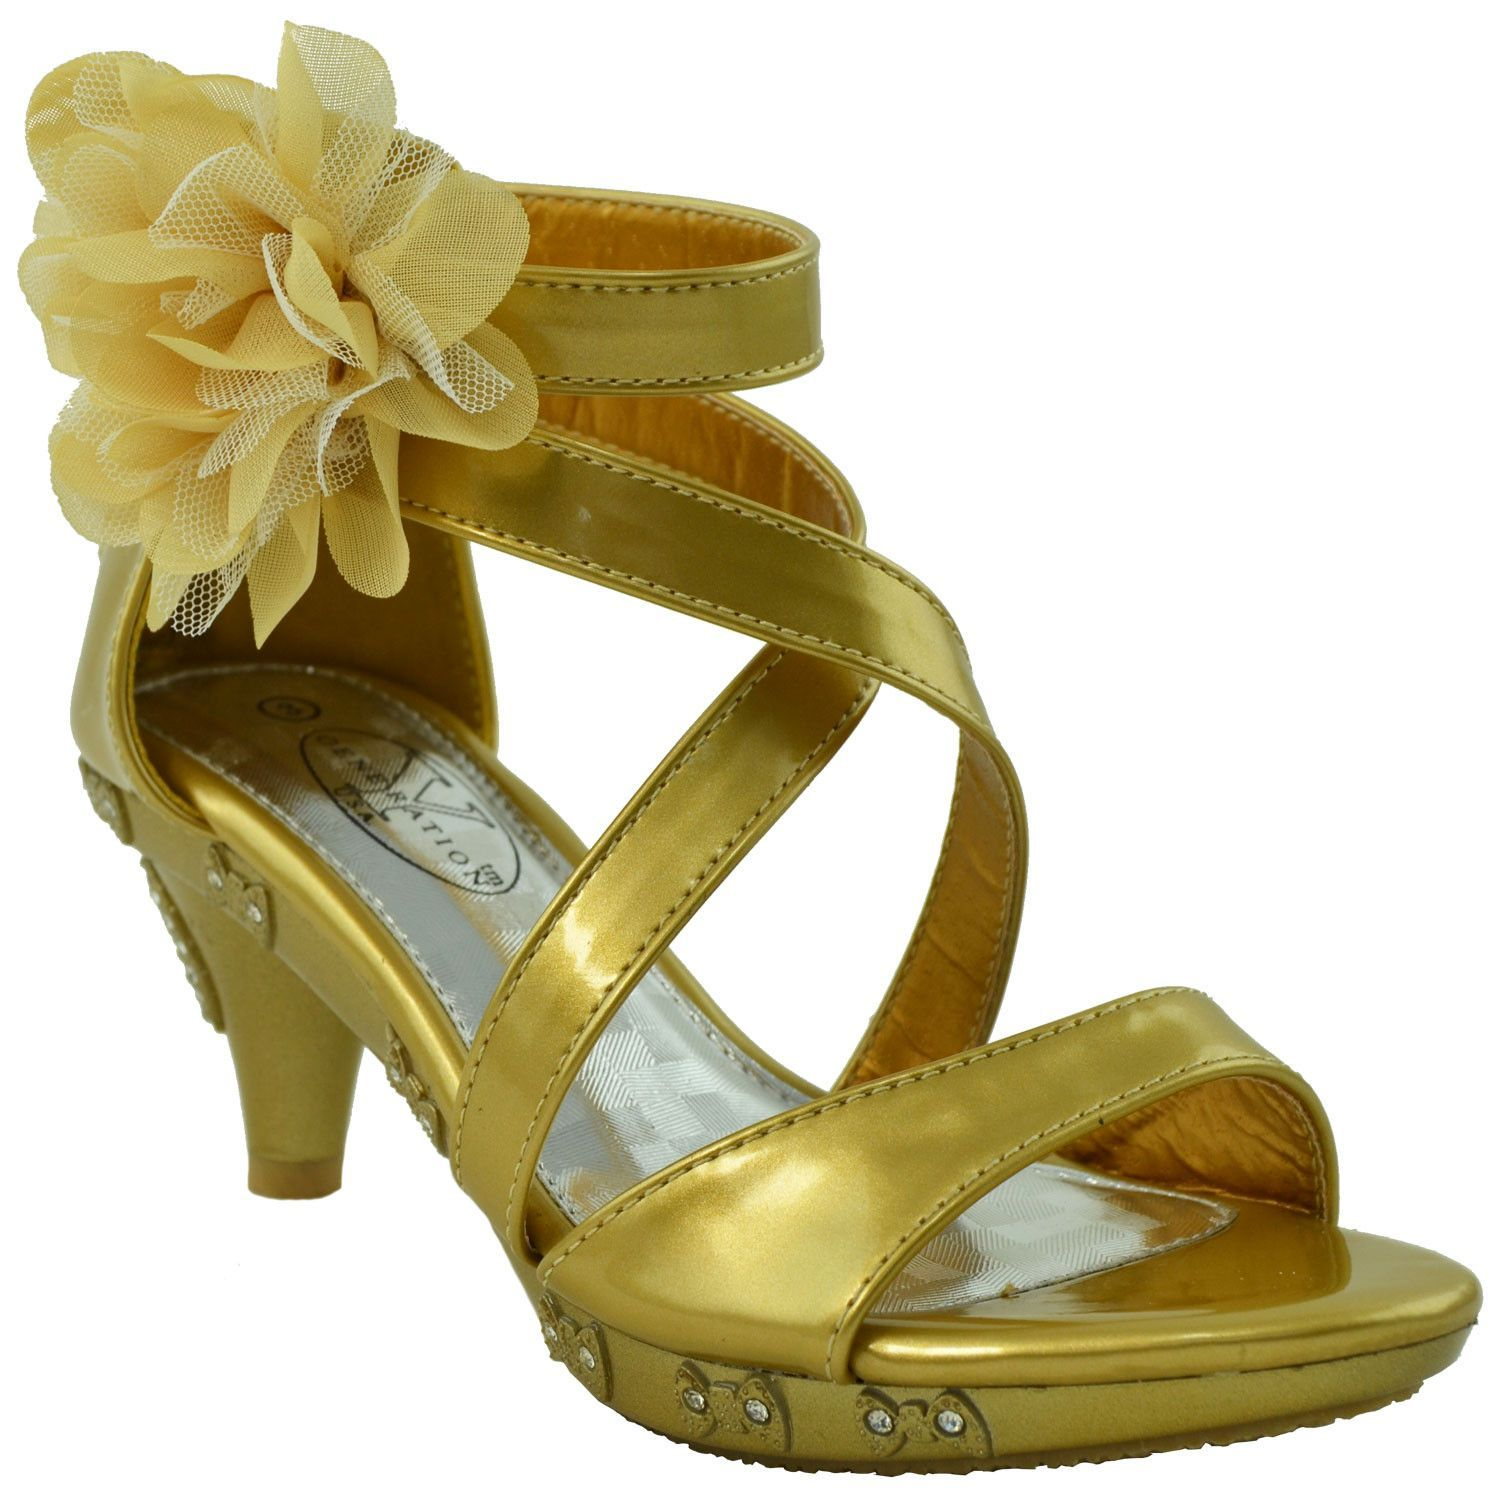 0c6bc4e459582 Strappy Patent Leather. Bows with Rhinestones. Flower on the side. Zipper.  Material  Man Made Material. Available in Yellow